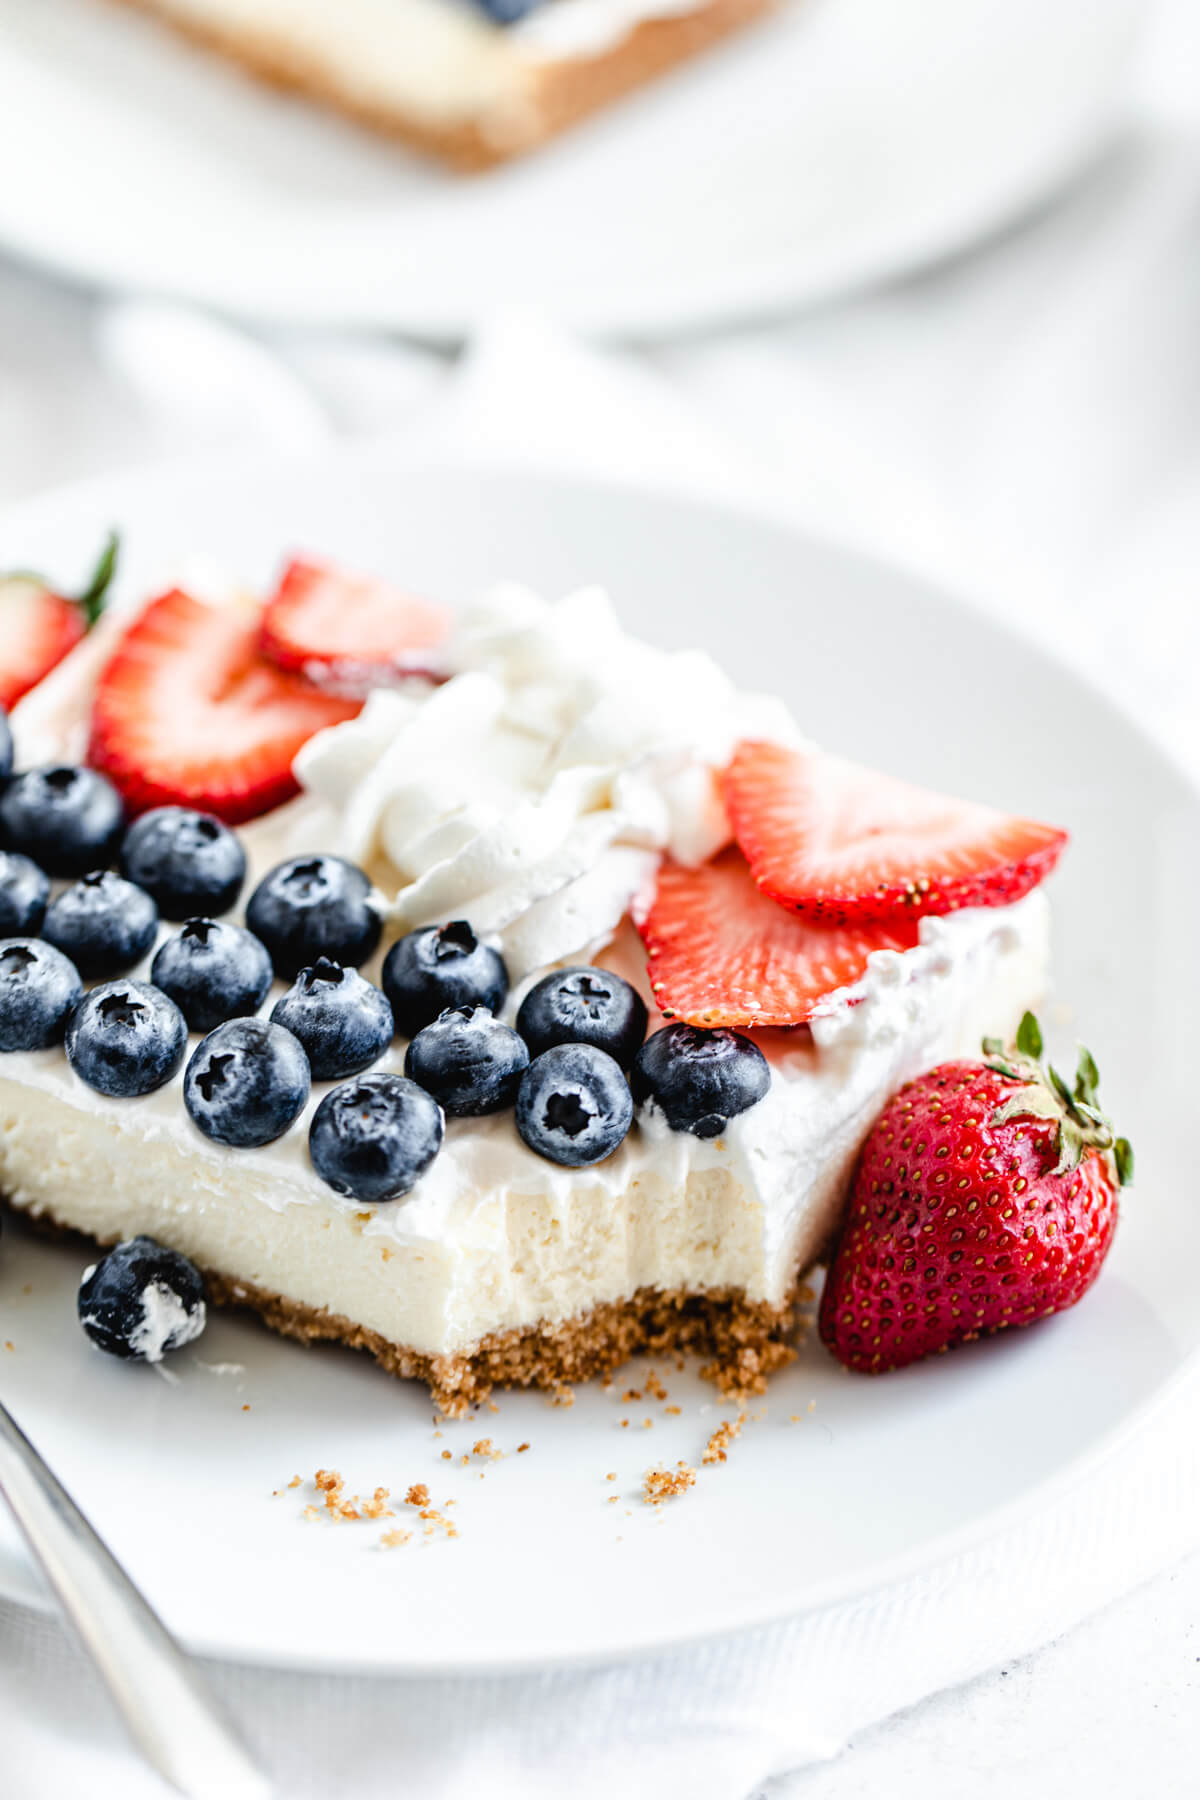 slice of cheesecake on a white plate